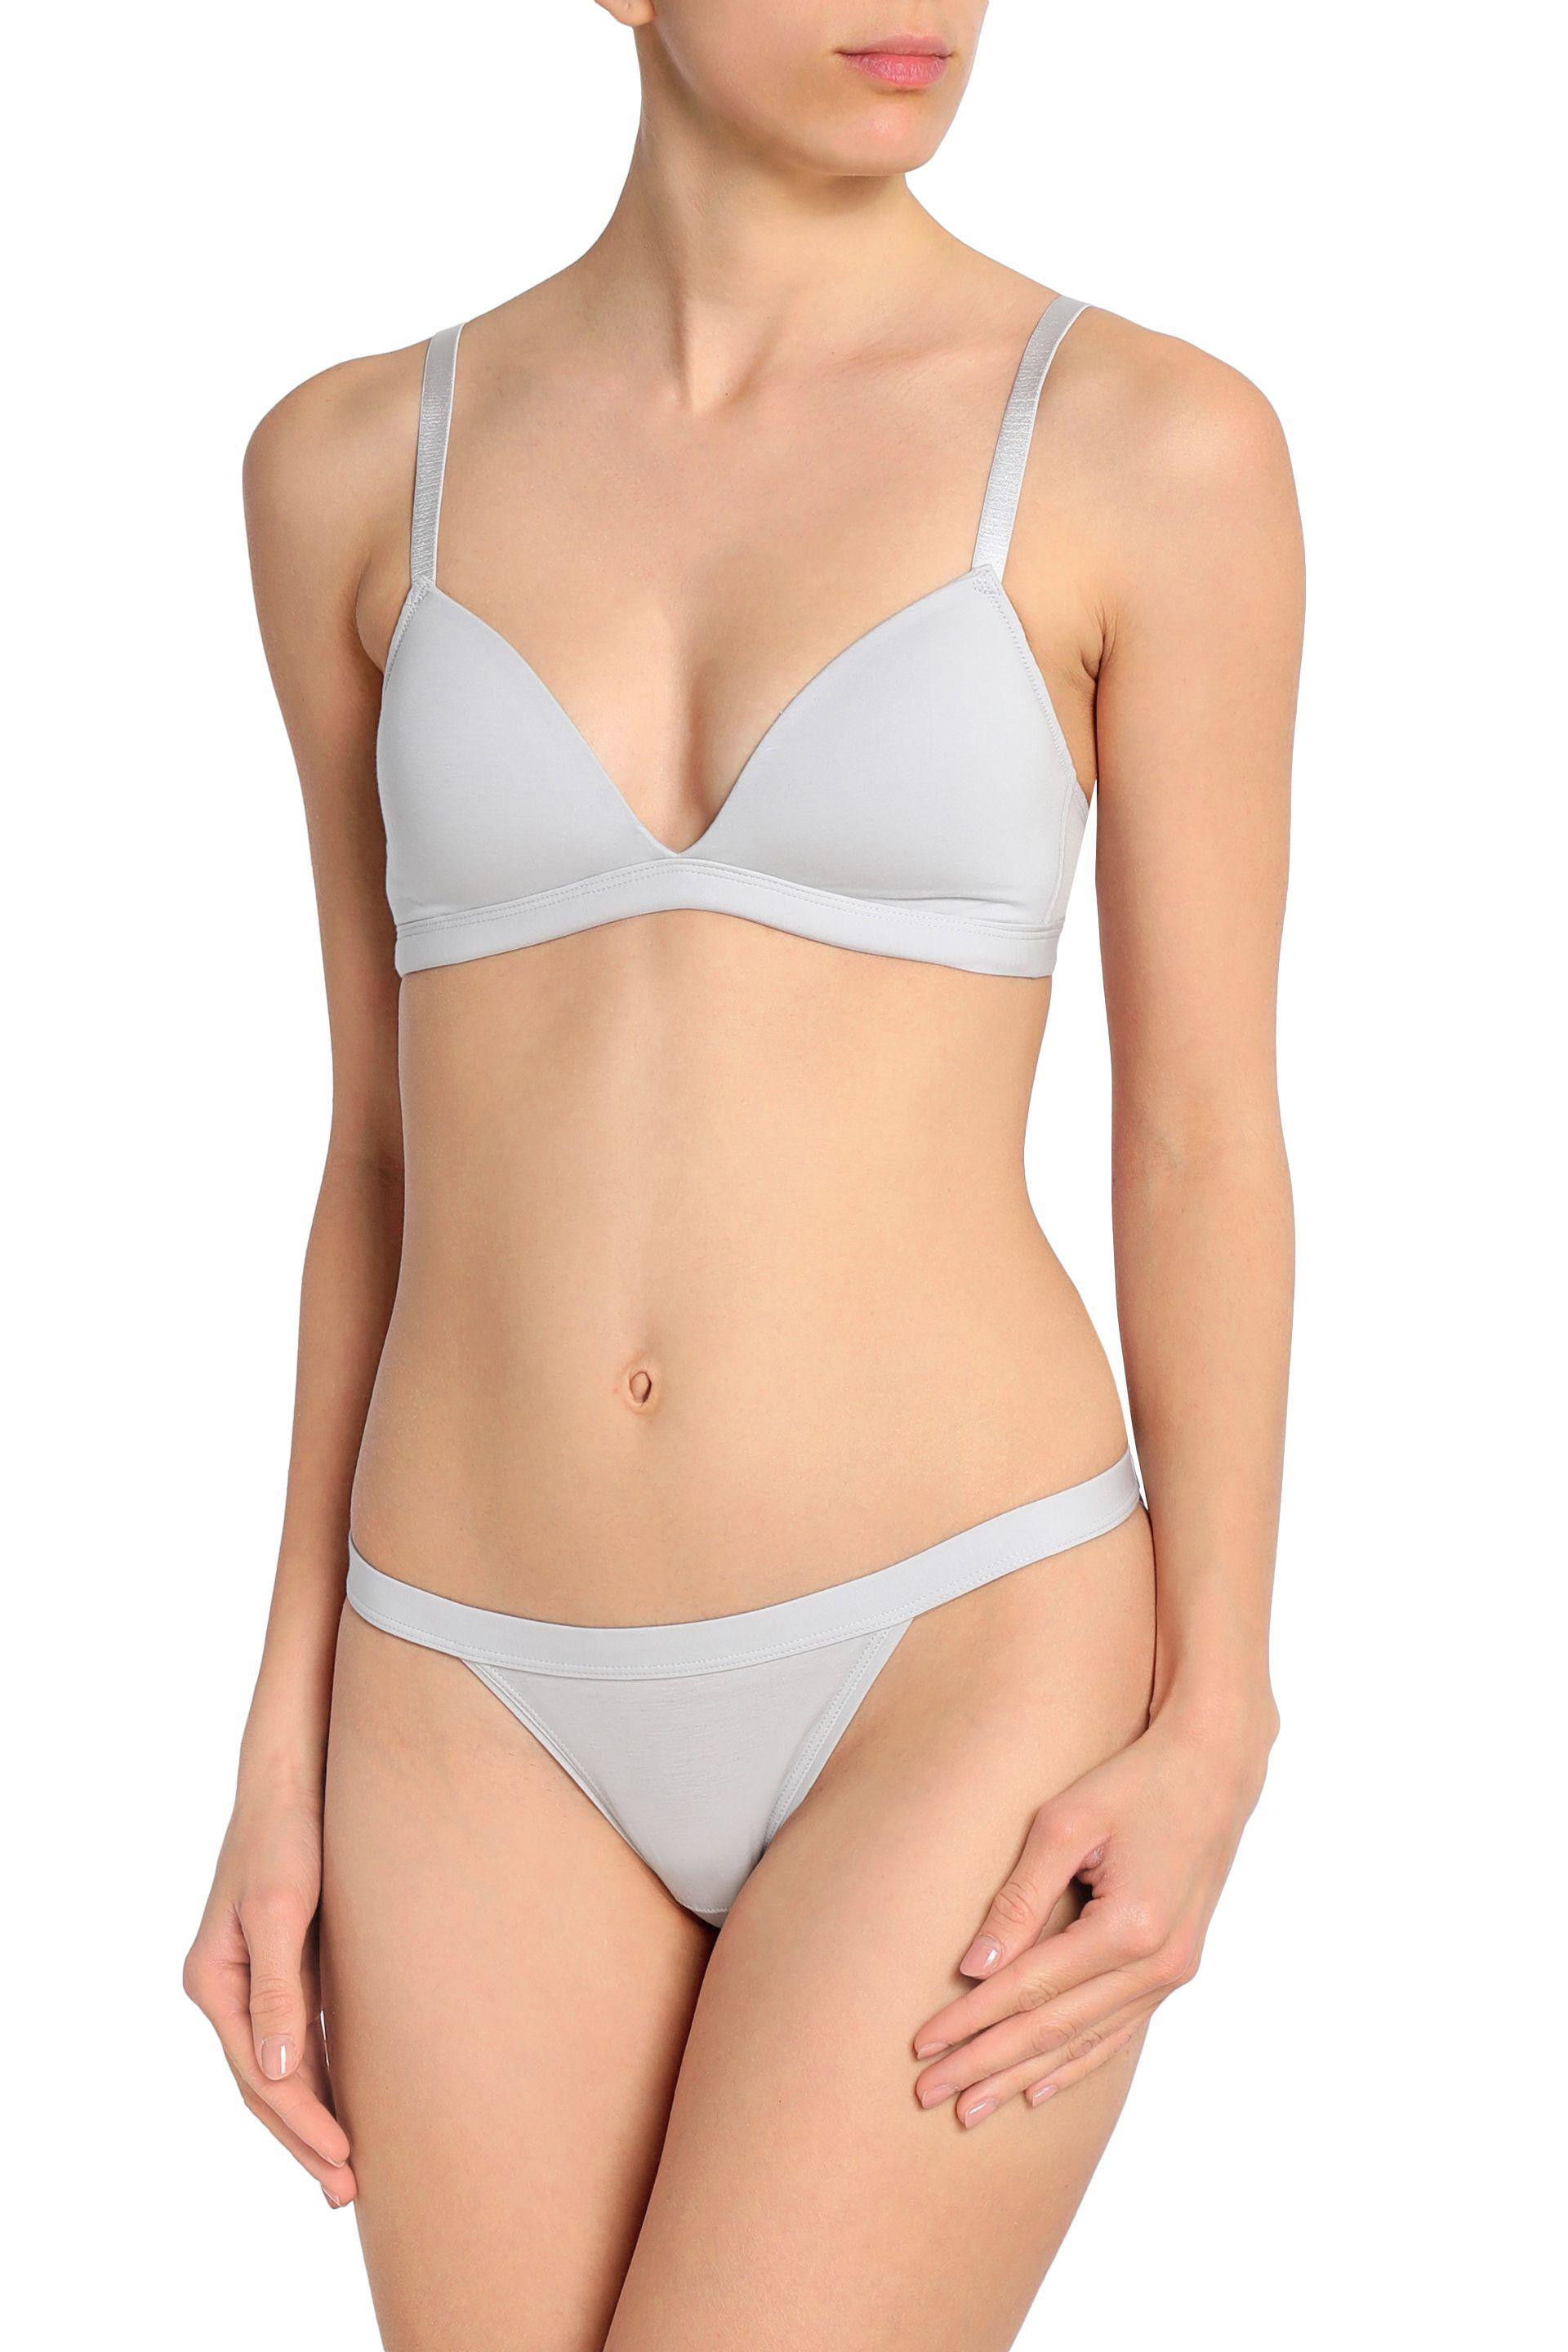 Collections Bodas Woman Stretch Pima Cotton-jersey Low-rise Briefs Light Gray Size M Bodas View Cheap Price Best Store To Get Cheap Price Discount Clearance Cheap Recommend vQblrCsZr